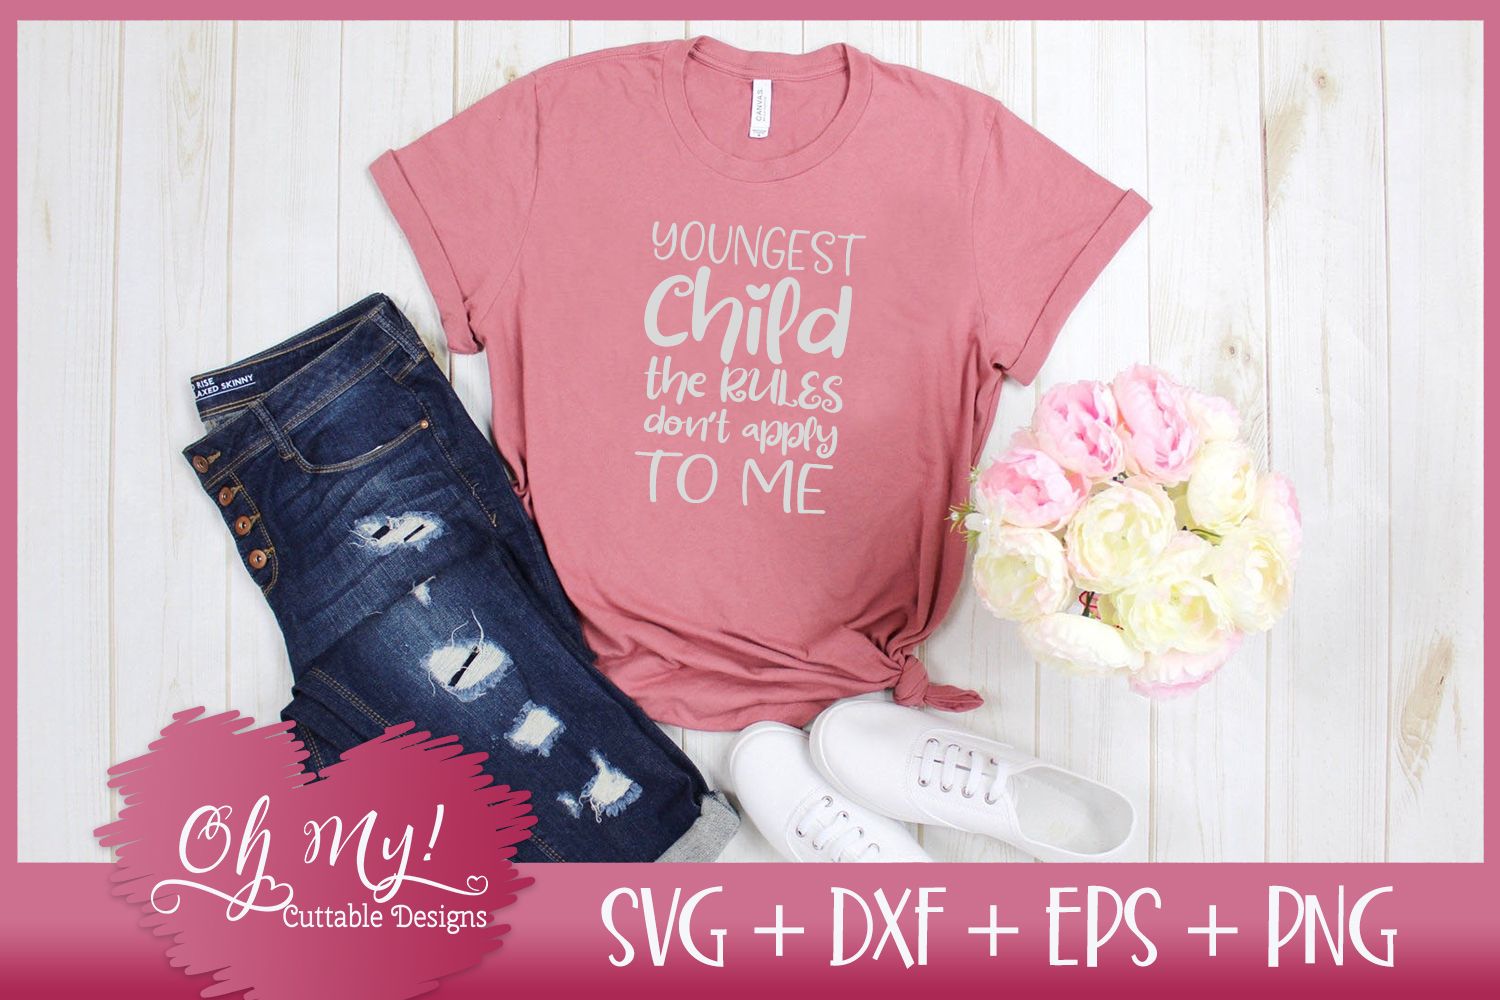 Youngest Child Rules - SVG EPS DXF PNG Cutting File example image 1